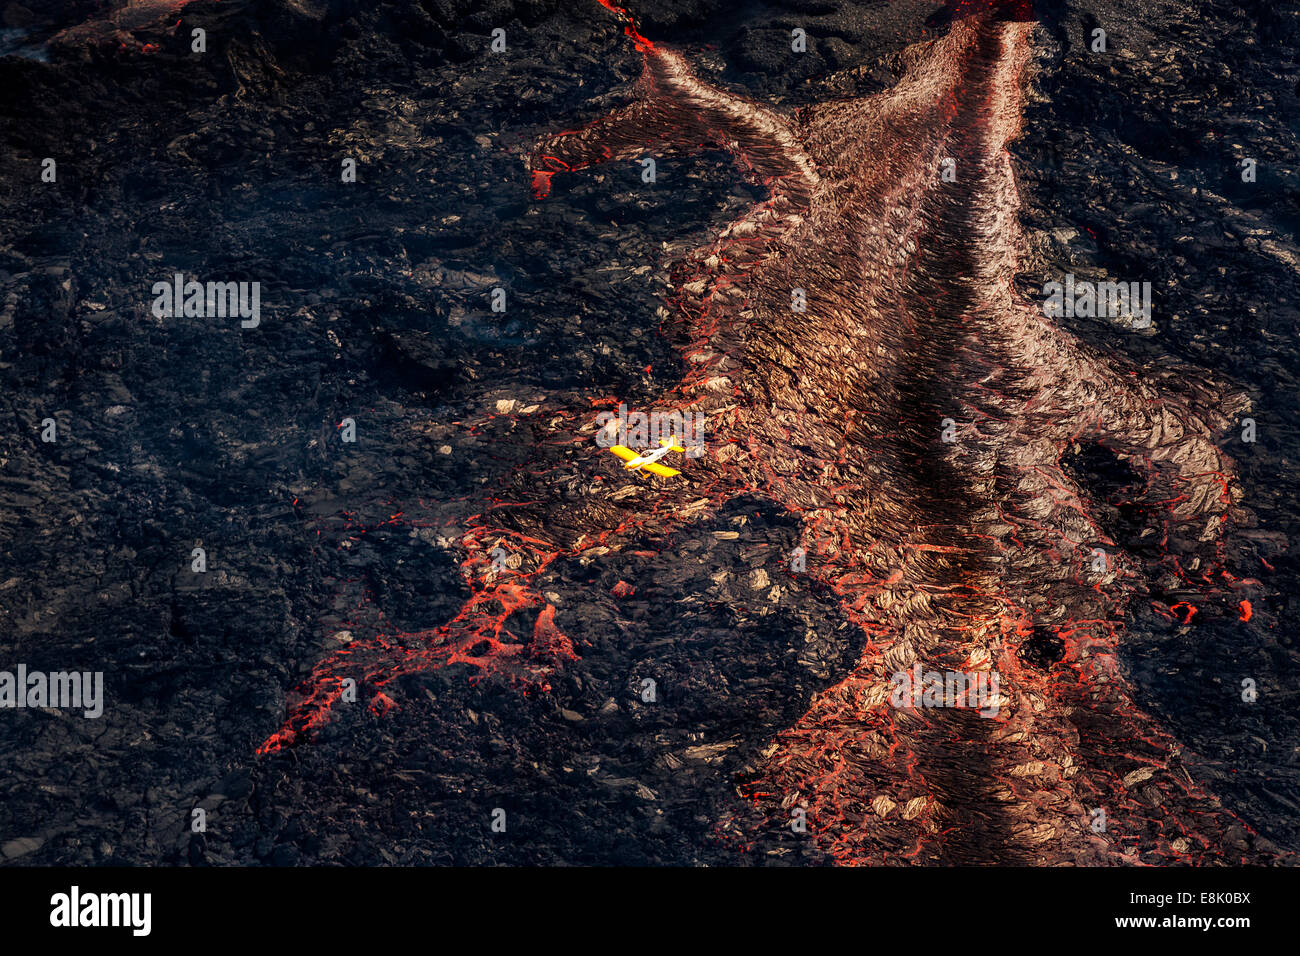 Plane flying over the Volcano Eruption site at the Holuhraun Fissure, by the Bardarbunga Volcano, Iceland. - Stock Image